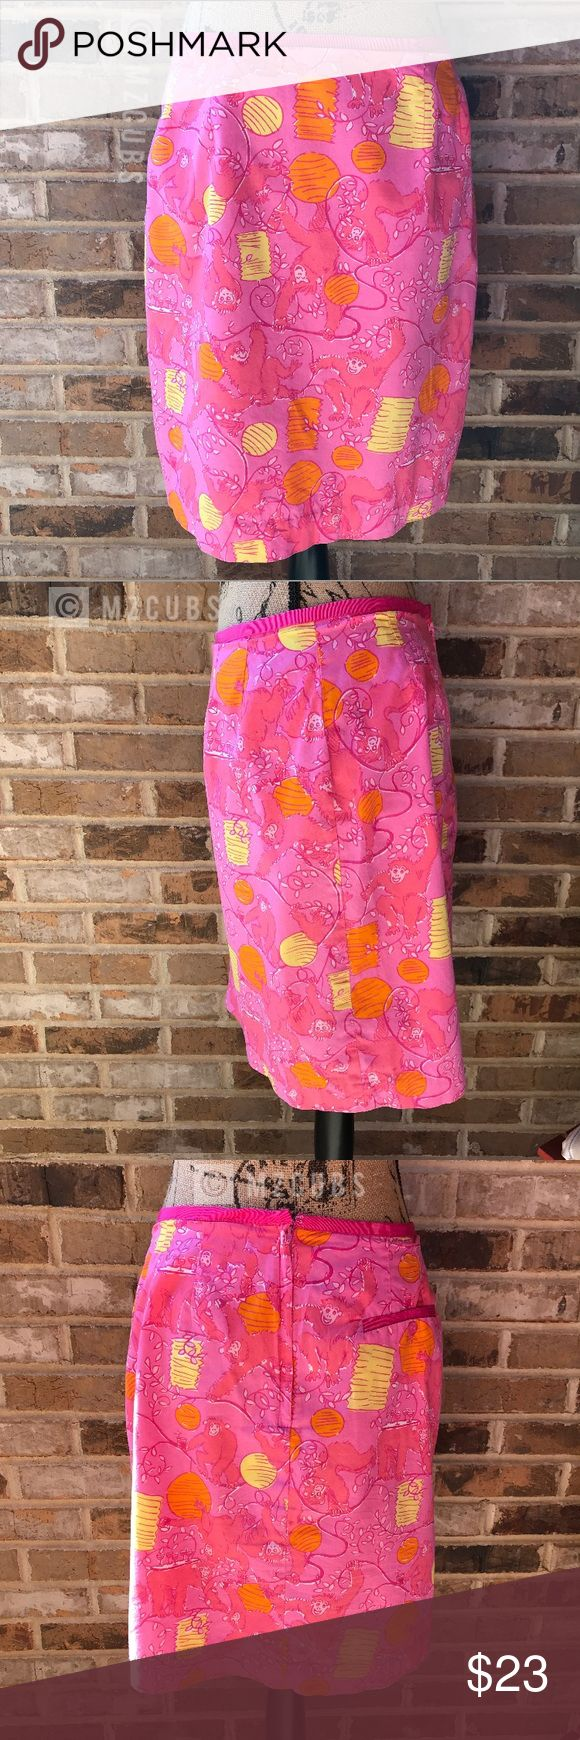 """Lilly Pulitzer Strawberry Barrel of Monkeys Skirt VGUC. Bright pink skirt with monkeys scattered throughout. Eyelet closure however fabric piece is missing to close. Waist approximately 14"""" laying flat, length approximately 19"""". All photos taken in natural light. Photos may not be used without permission. 💰Reasonable offers welcome. Lilly Pulitzer Skirts"""